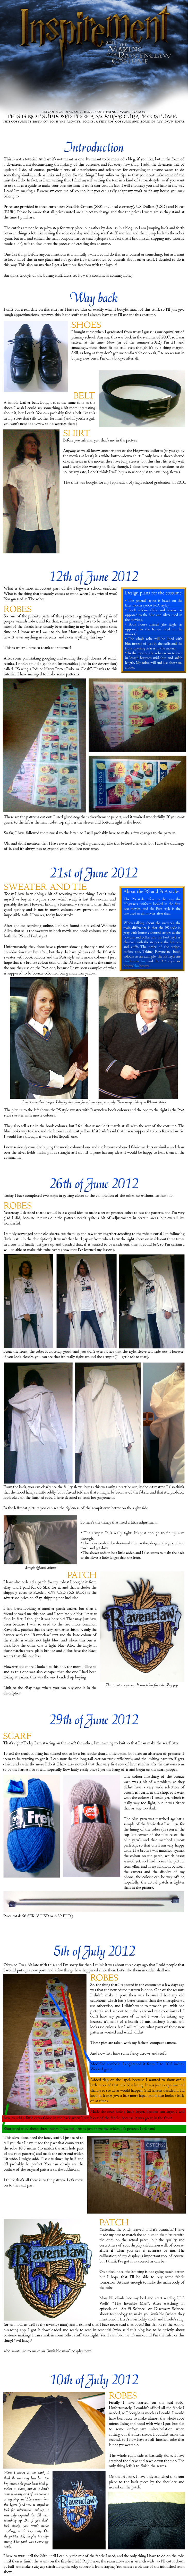 Ravenclaw Costume 'Blog'. The Making Of a Cosplay by Inspirement